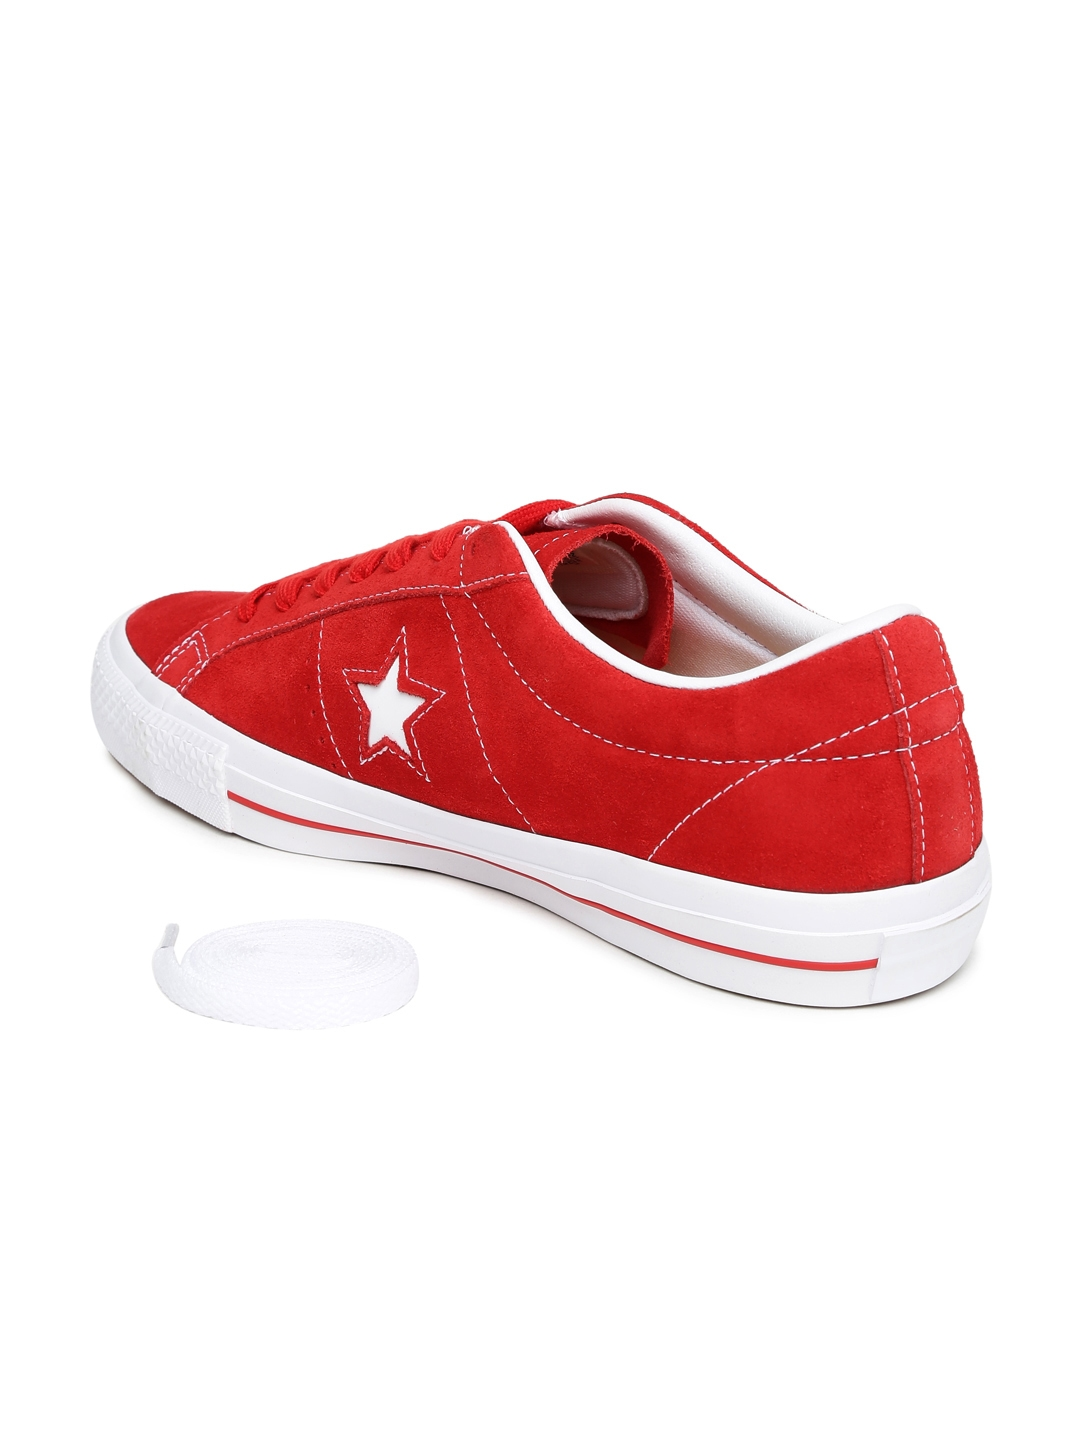 3df5f3e6ae7743 Buy Converse Unisex Red Suede Sneakers - Casual Shoes for Unisex ...